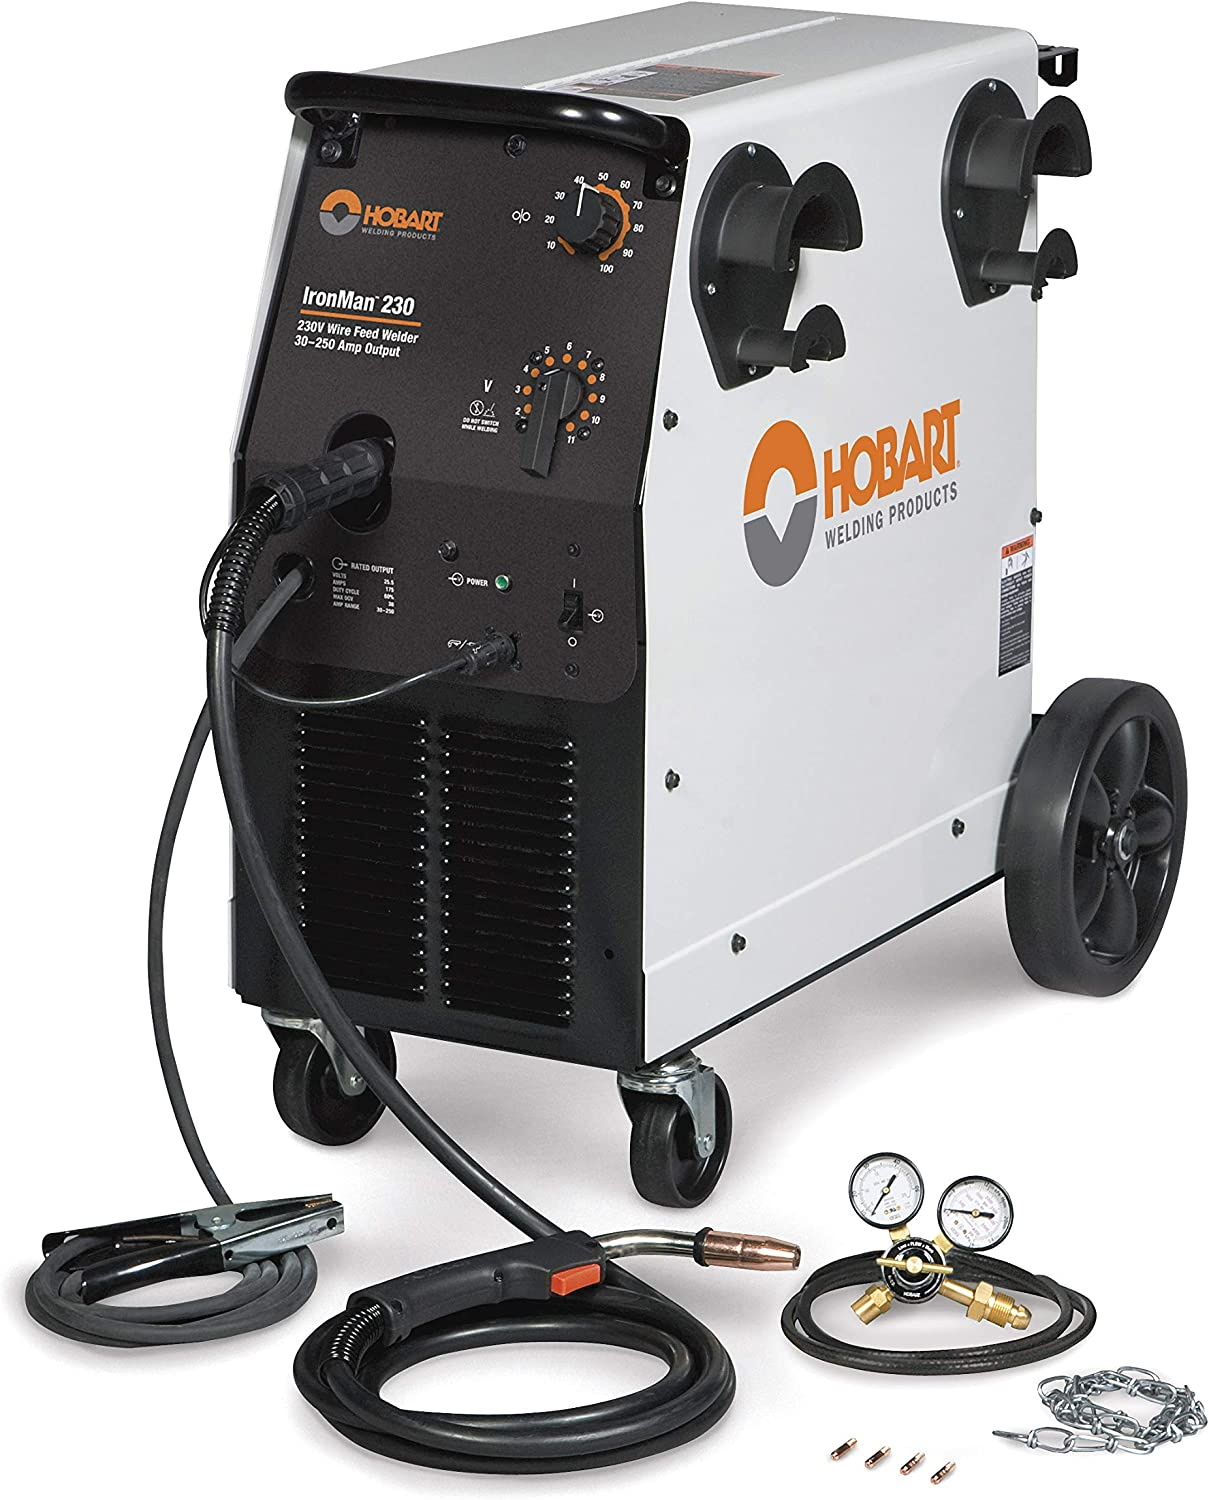 #1 Hobart 500536 Ironman MIG Welder w/ Wheel Kit